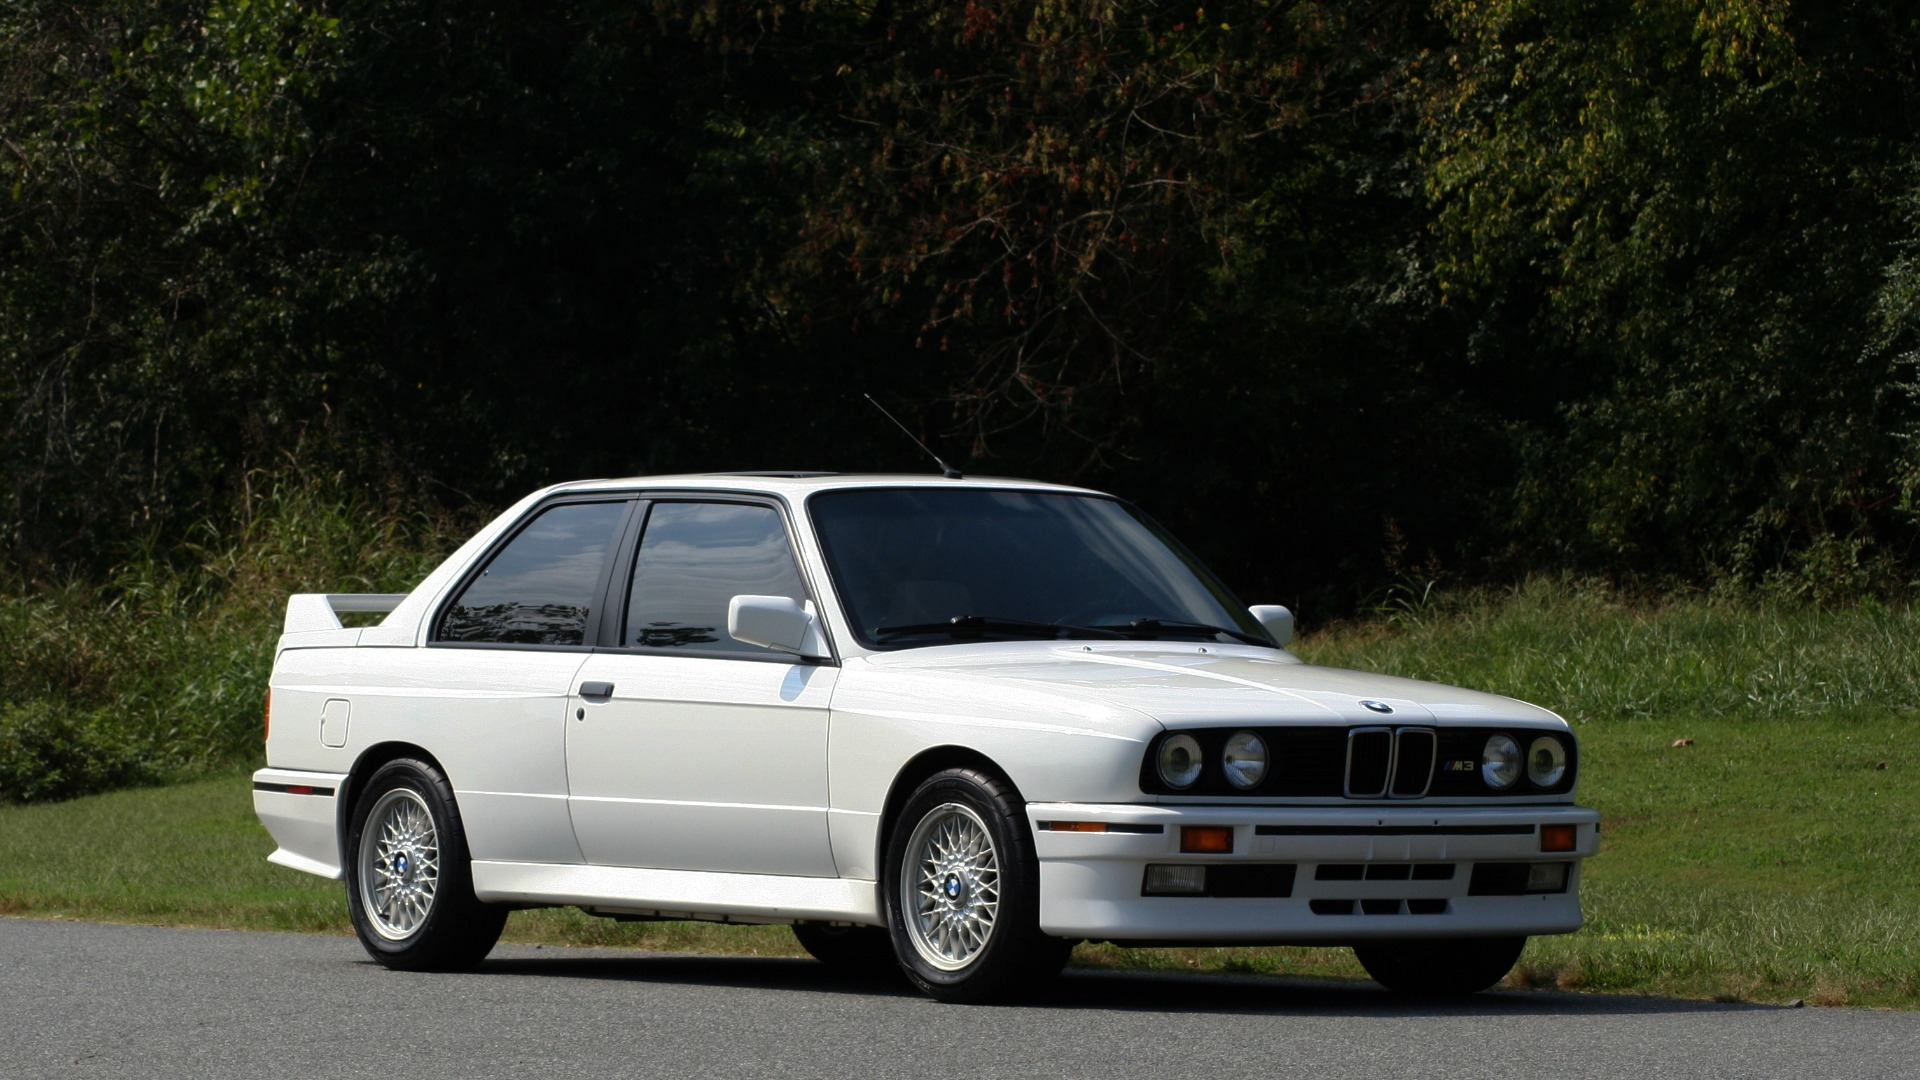 Used 1989 BMW M3 COUPE 2DR / 5-SPEED MAN / LOW MILES / SUPER CLEAN for sale Sold at Formula Imports in Charlotte NC 28227 12